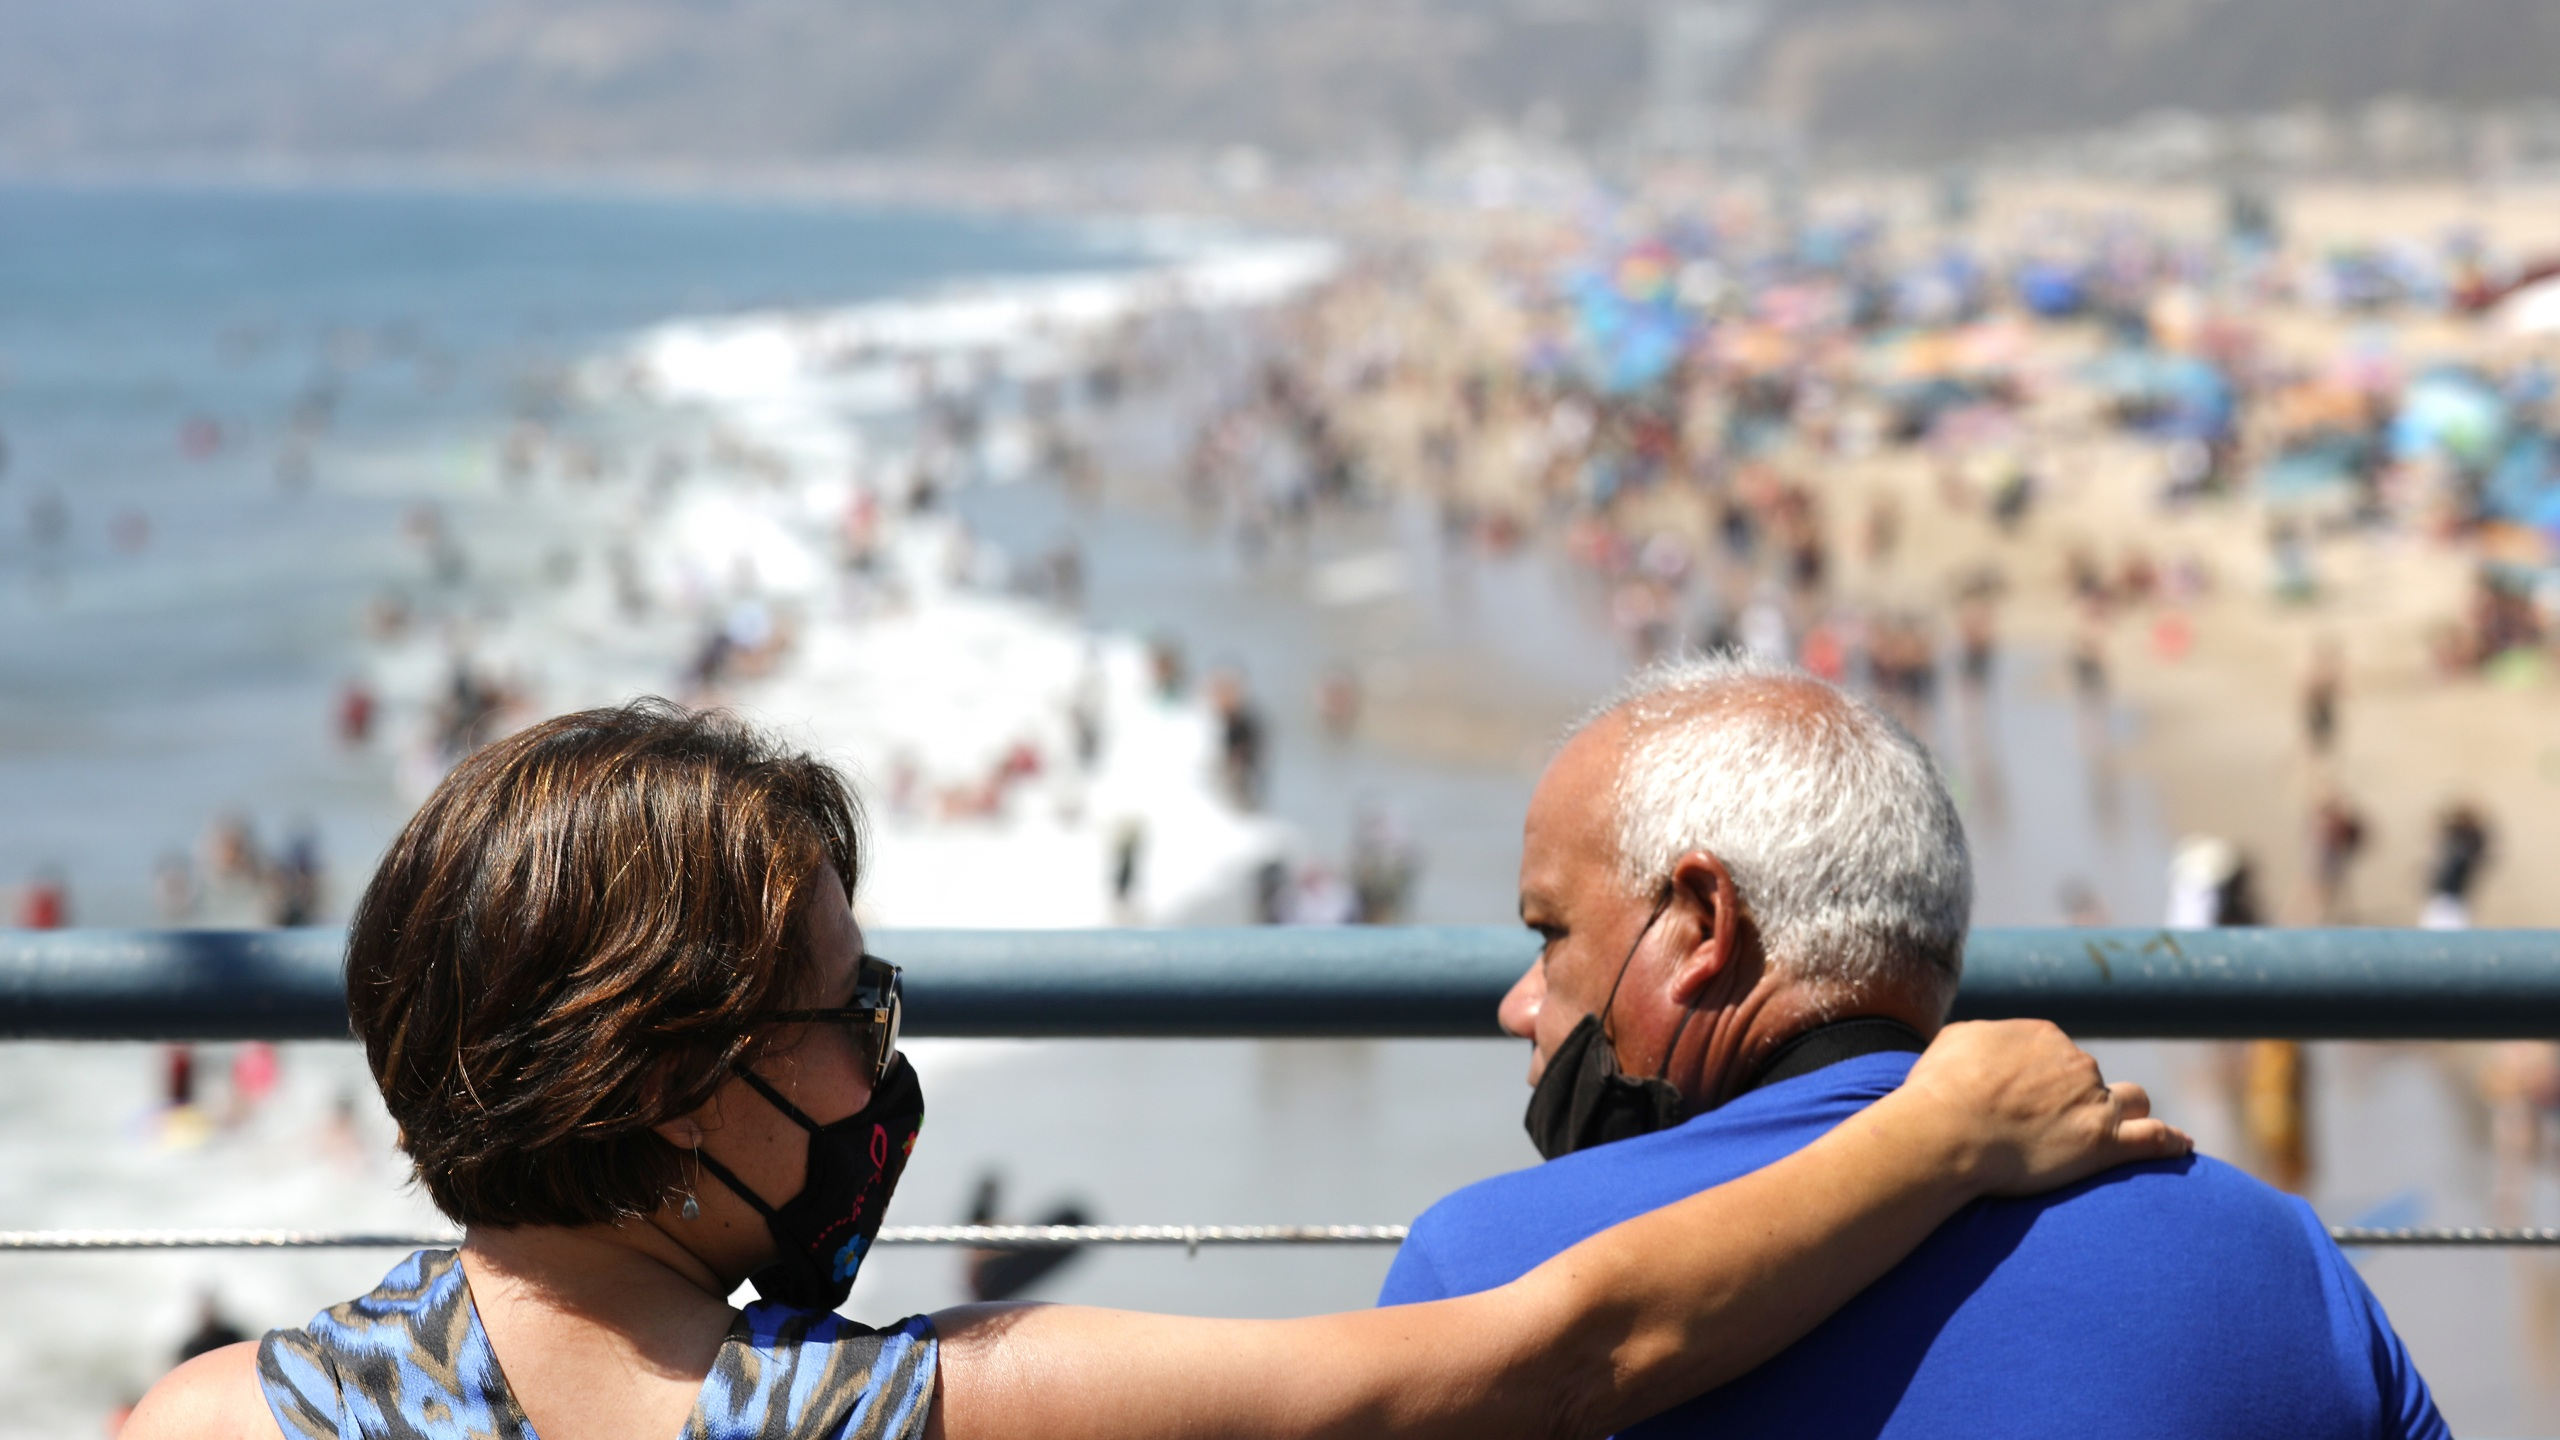 People sit on the Santa Monica pier as others gather on the beach on the first day of the Labor Day weekend on Sept. 5, 2020 in Santa Monica. (Mario Tama/Getty Images)